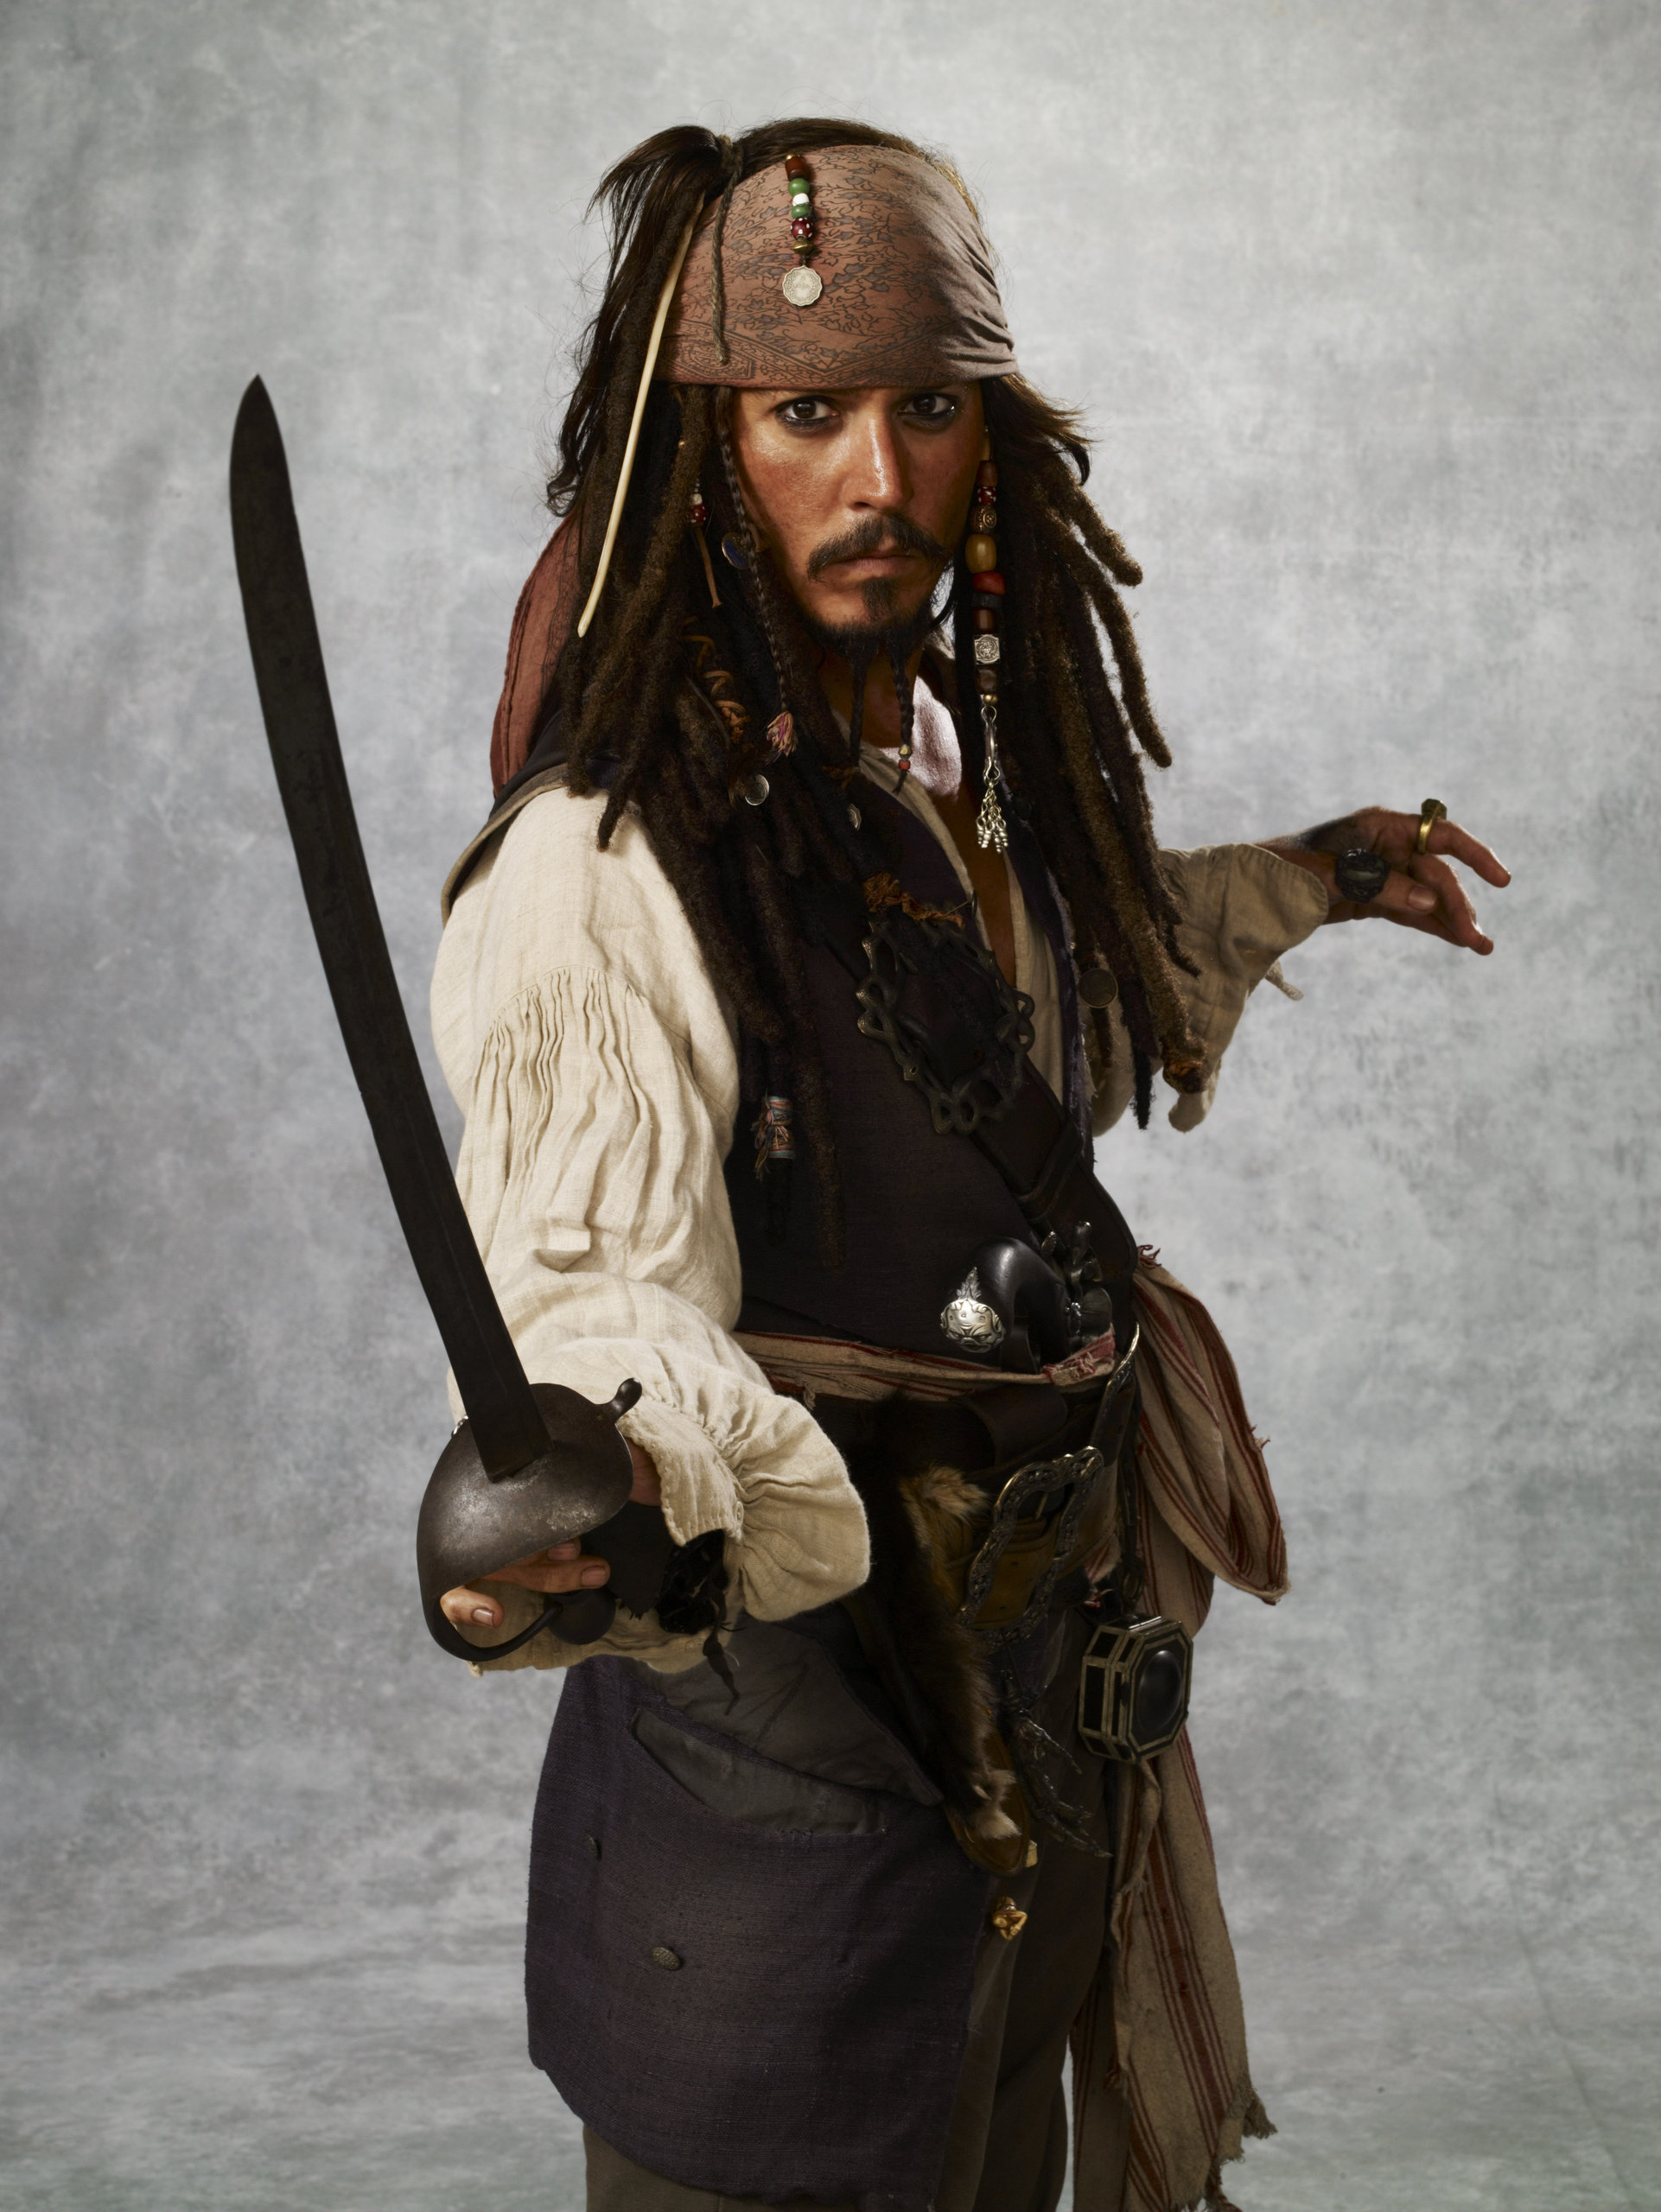 Pirate des caraibes hentai sexy images